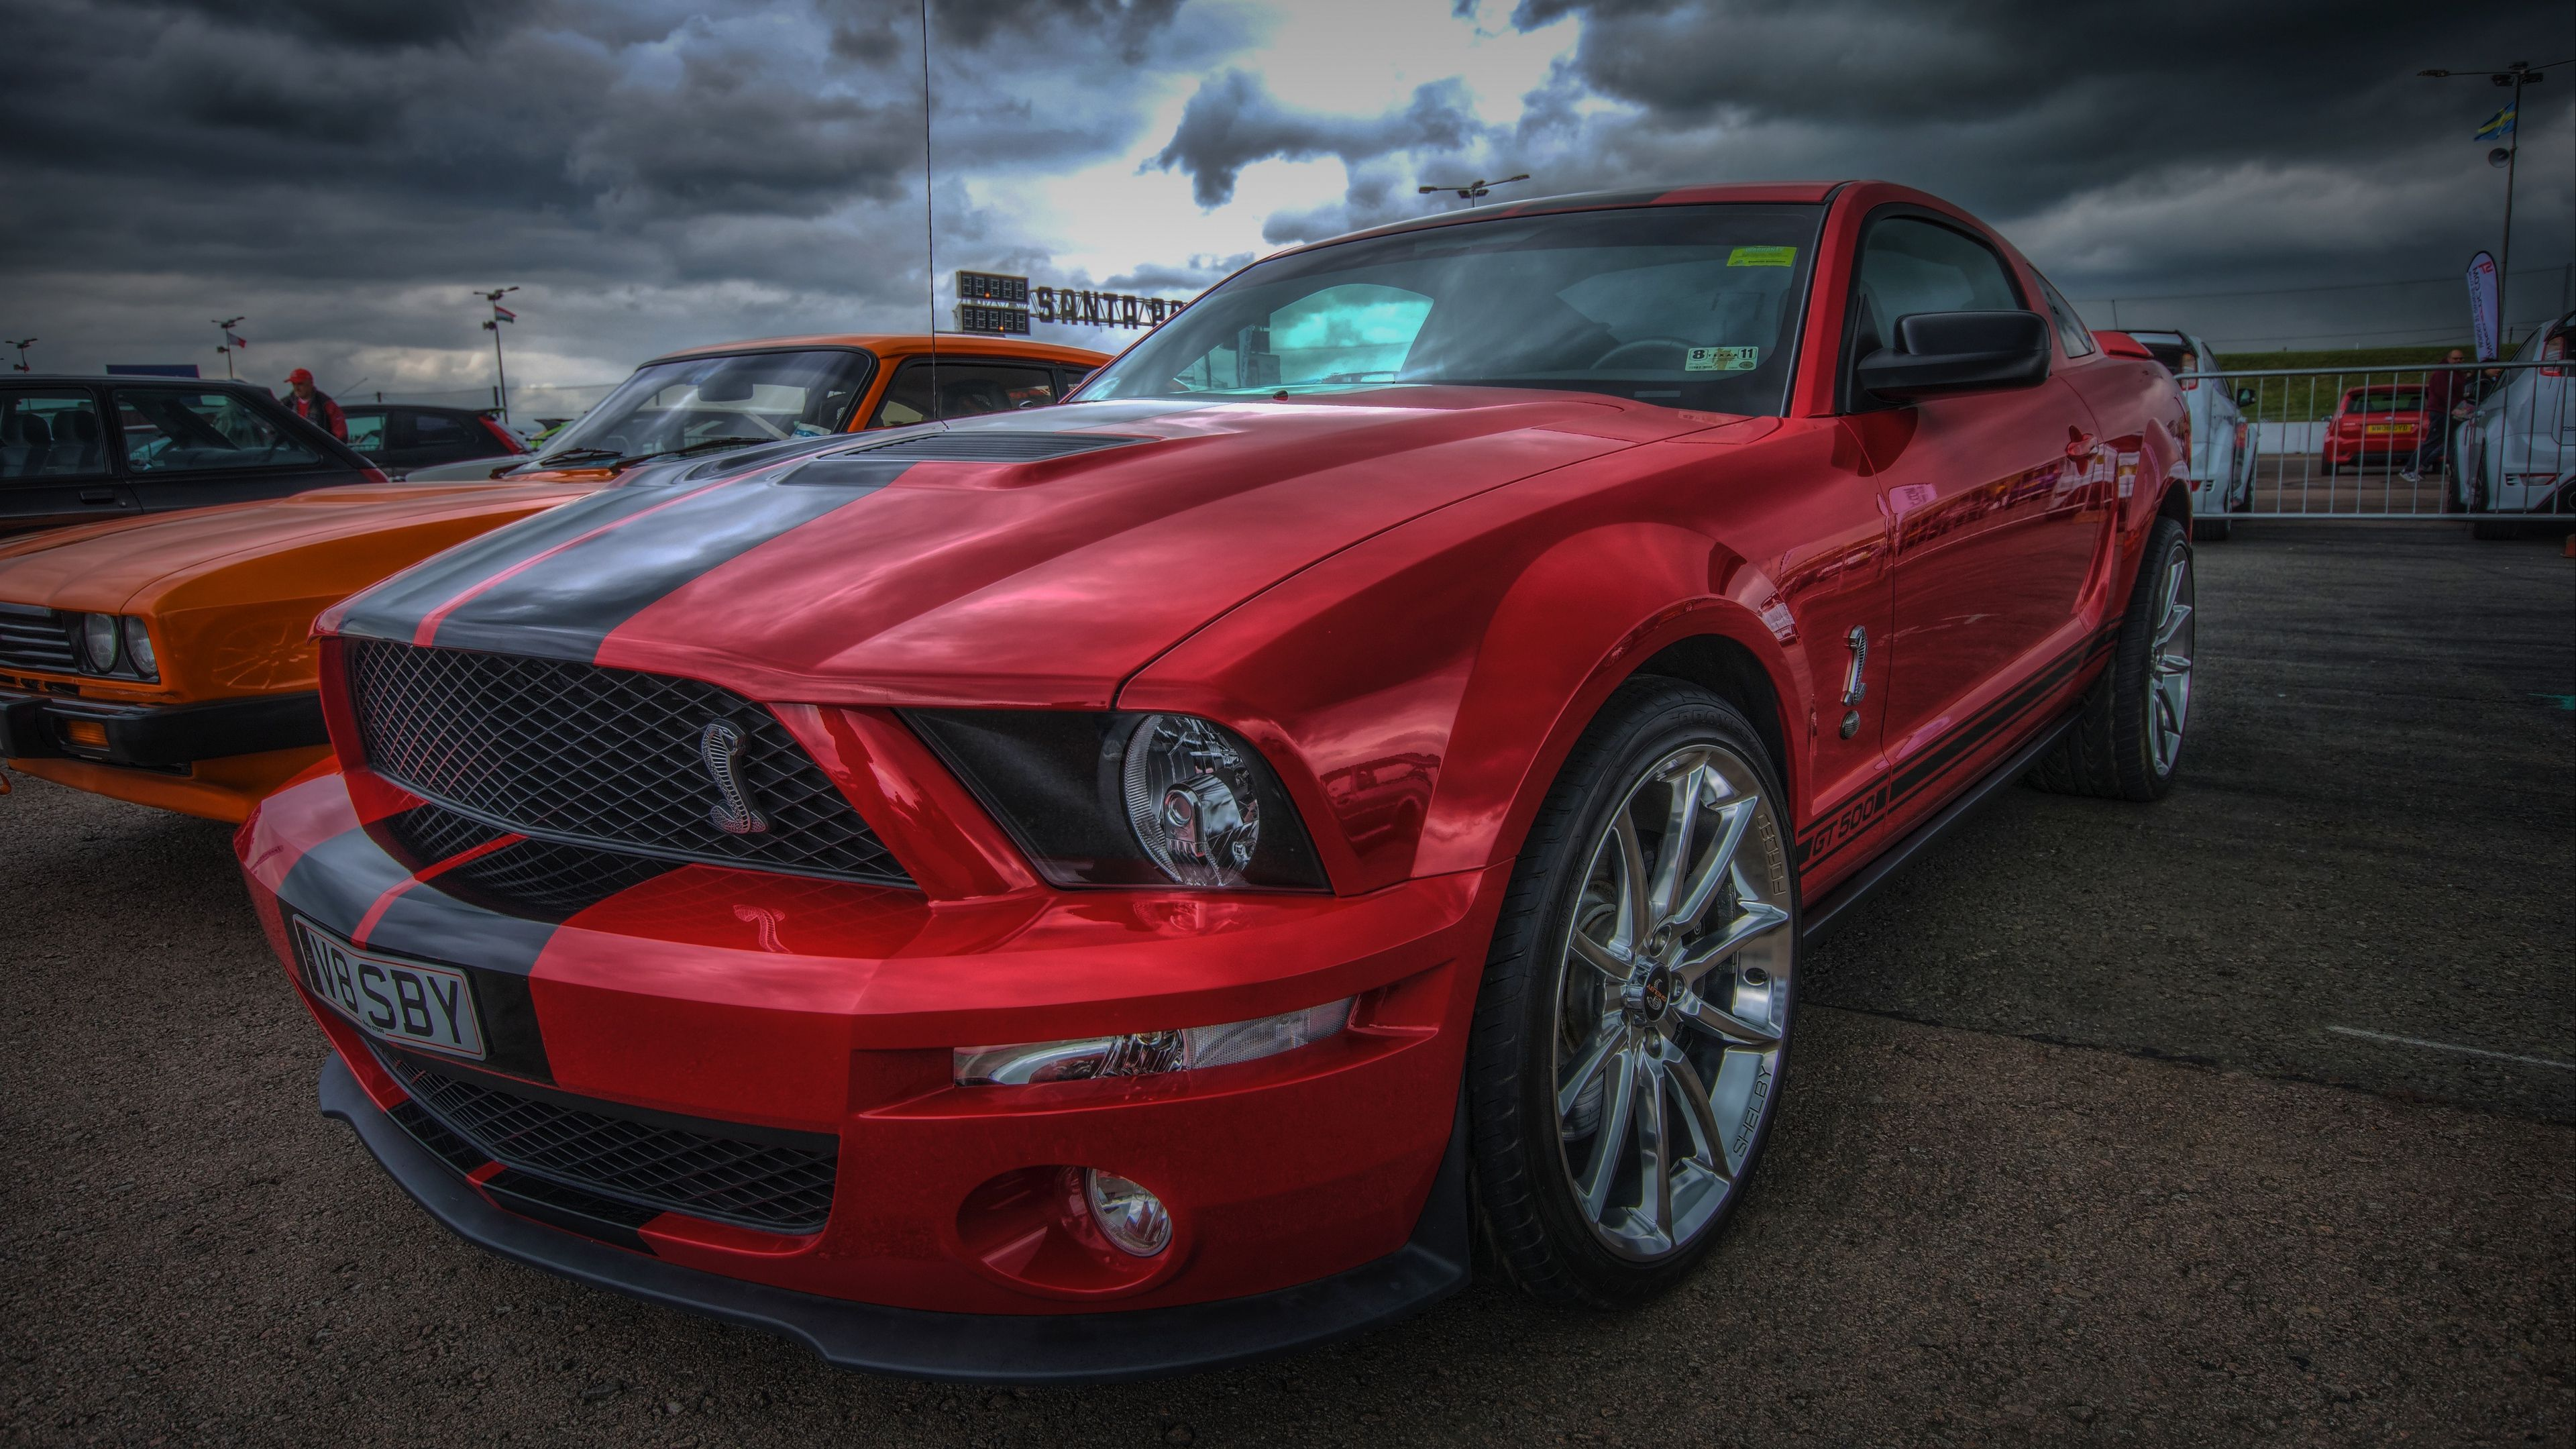 Ford Mustang Shelby Gt500 Ford Mustang Red Sports Car Hdr 4k Red Ford Mustang Shelby Gt500 Ford Mus Mustang Shelby Shelby Gt500 Ford Mustang Shelby Gt500